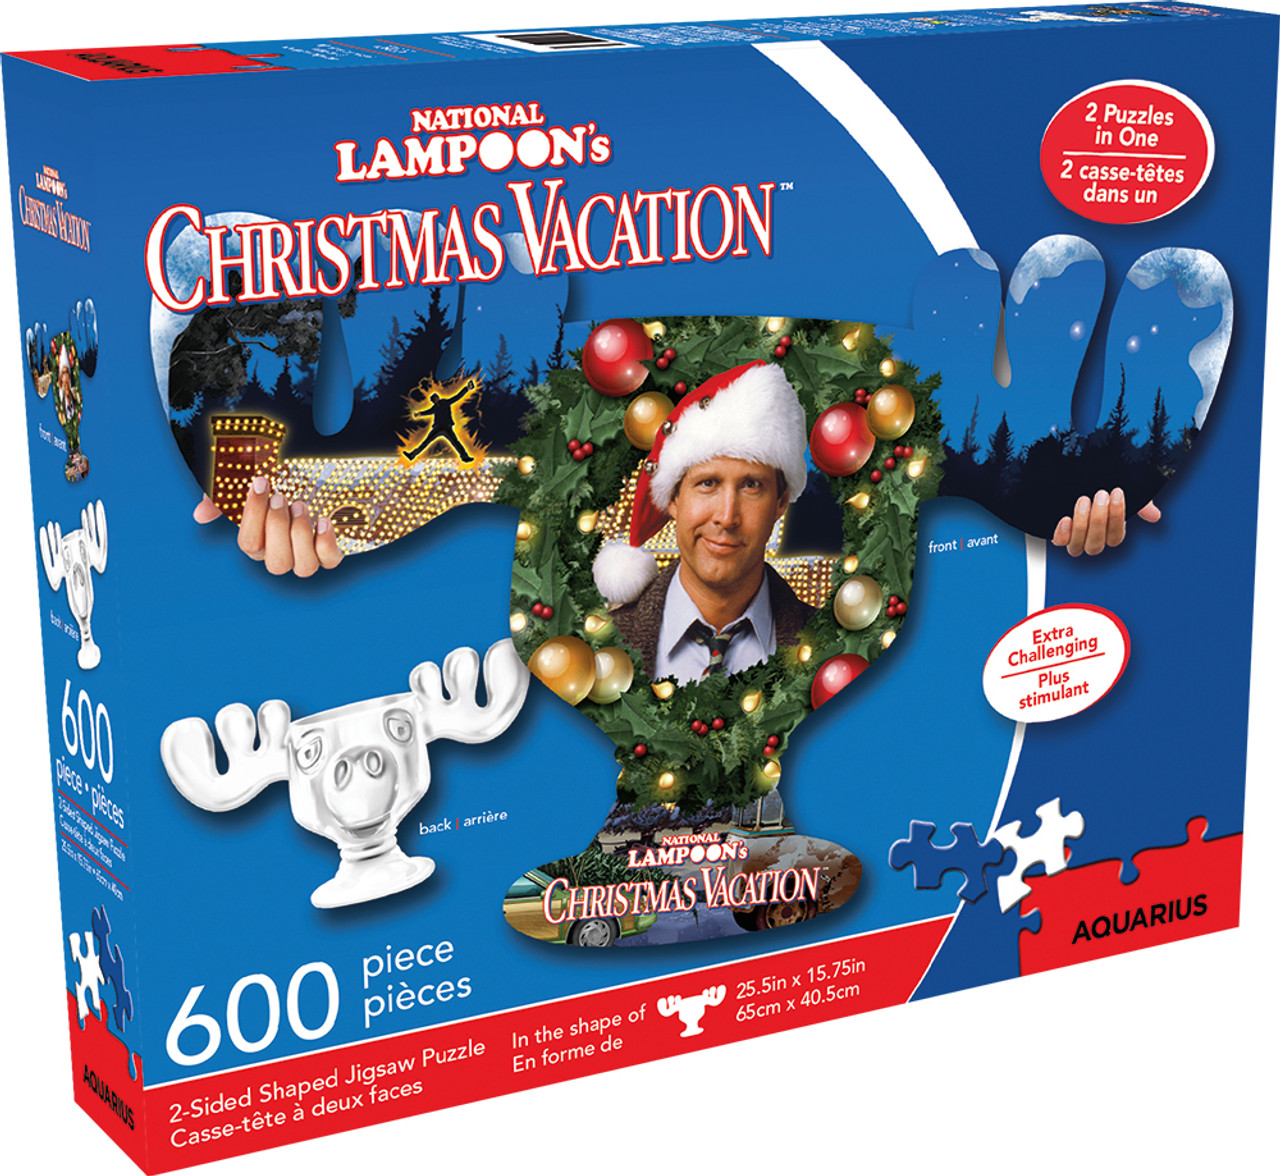 A Christmas Vacation.Christmas Vacation 600pc Double Sided Shaped Jigsaw Puzzle By Aquarius